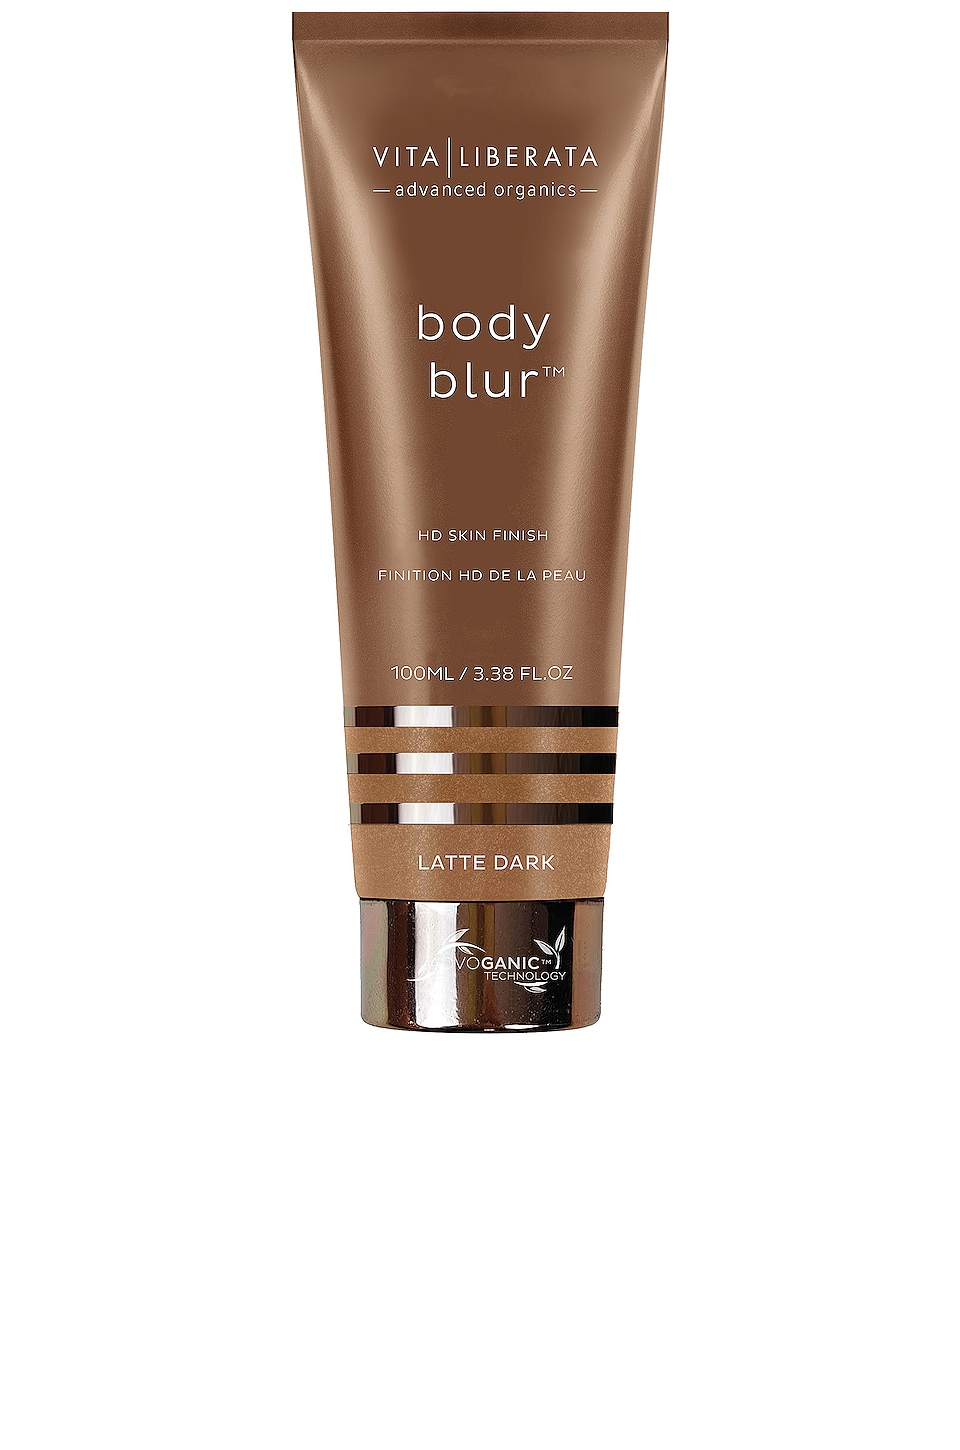 Vita Liberata Body Blur Instant HD Skin Finish in Latte Dark